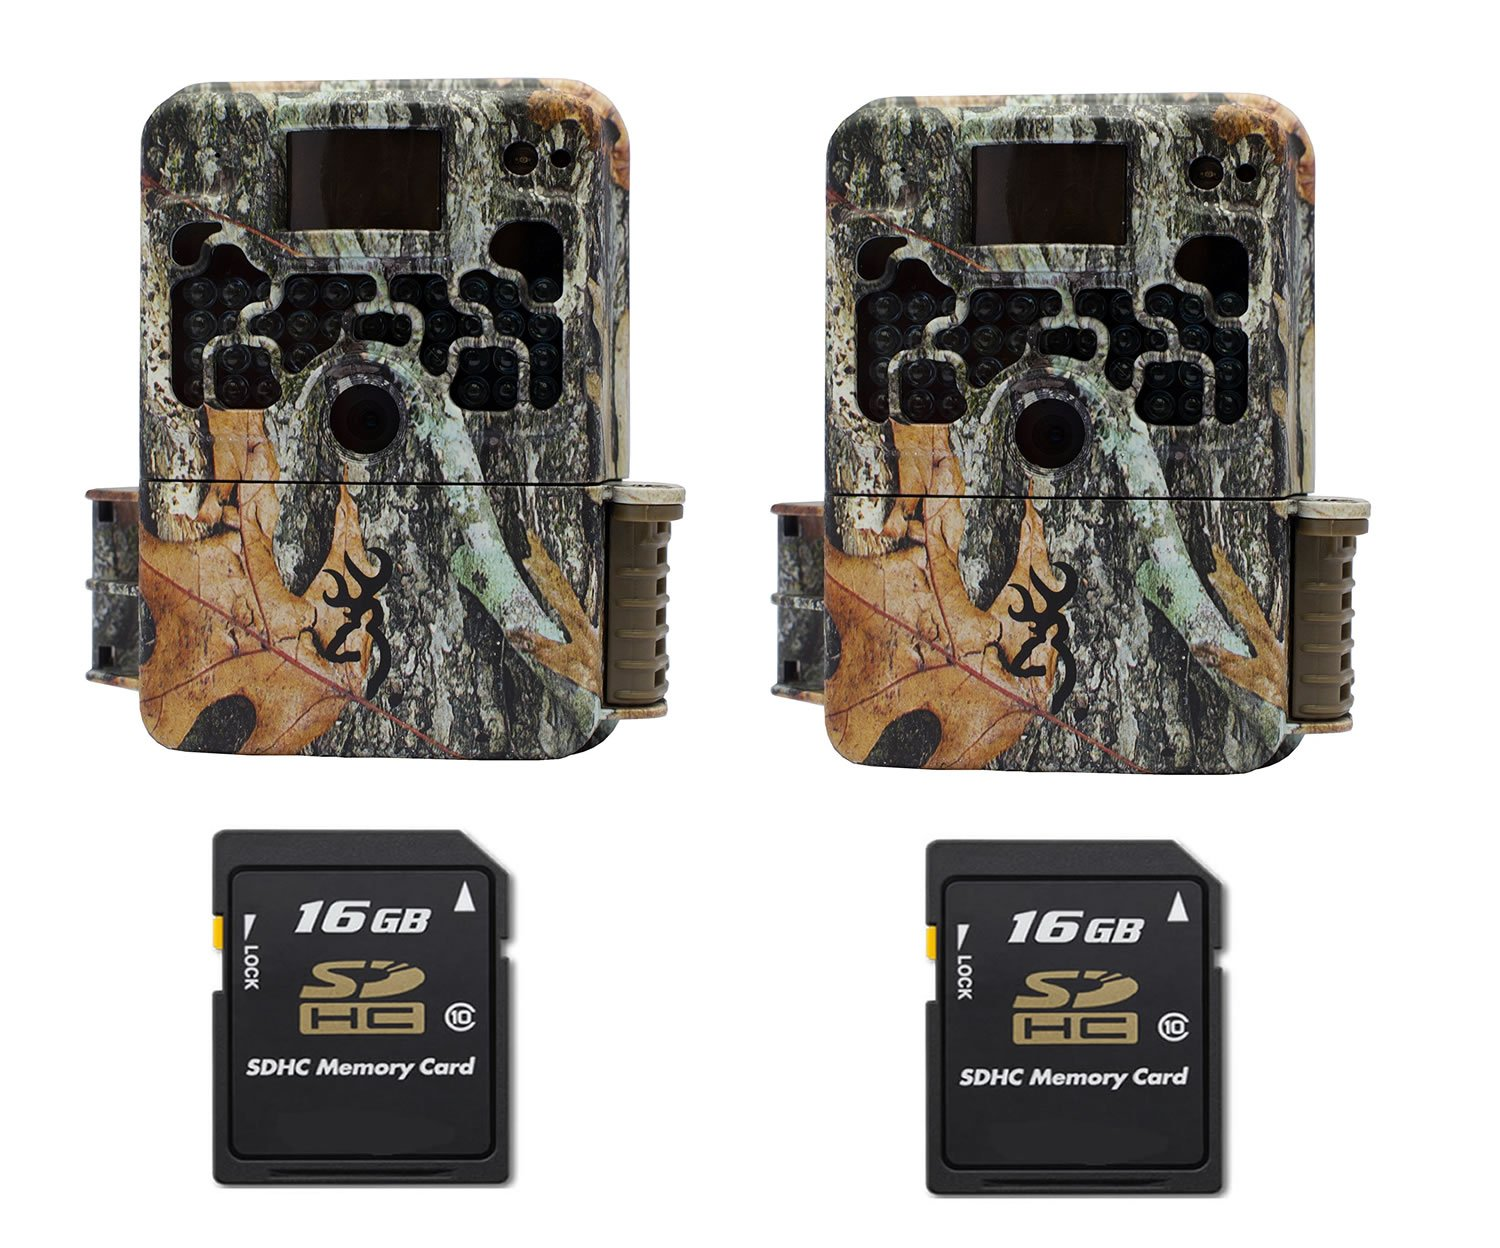 Browning STRIKE FORCE ELITE BTC5HDE Trail Game Camera (10MP) 2 Cameras With 2 16GB Memory Card by Browning Trail Cameras (Image #1)